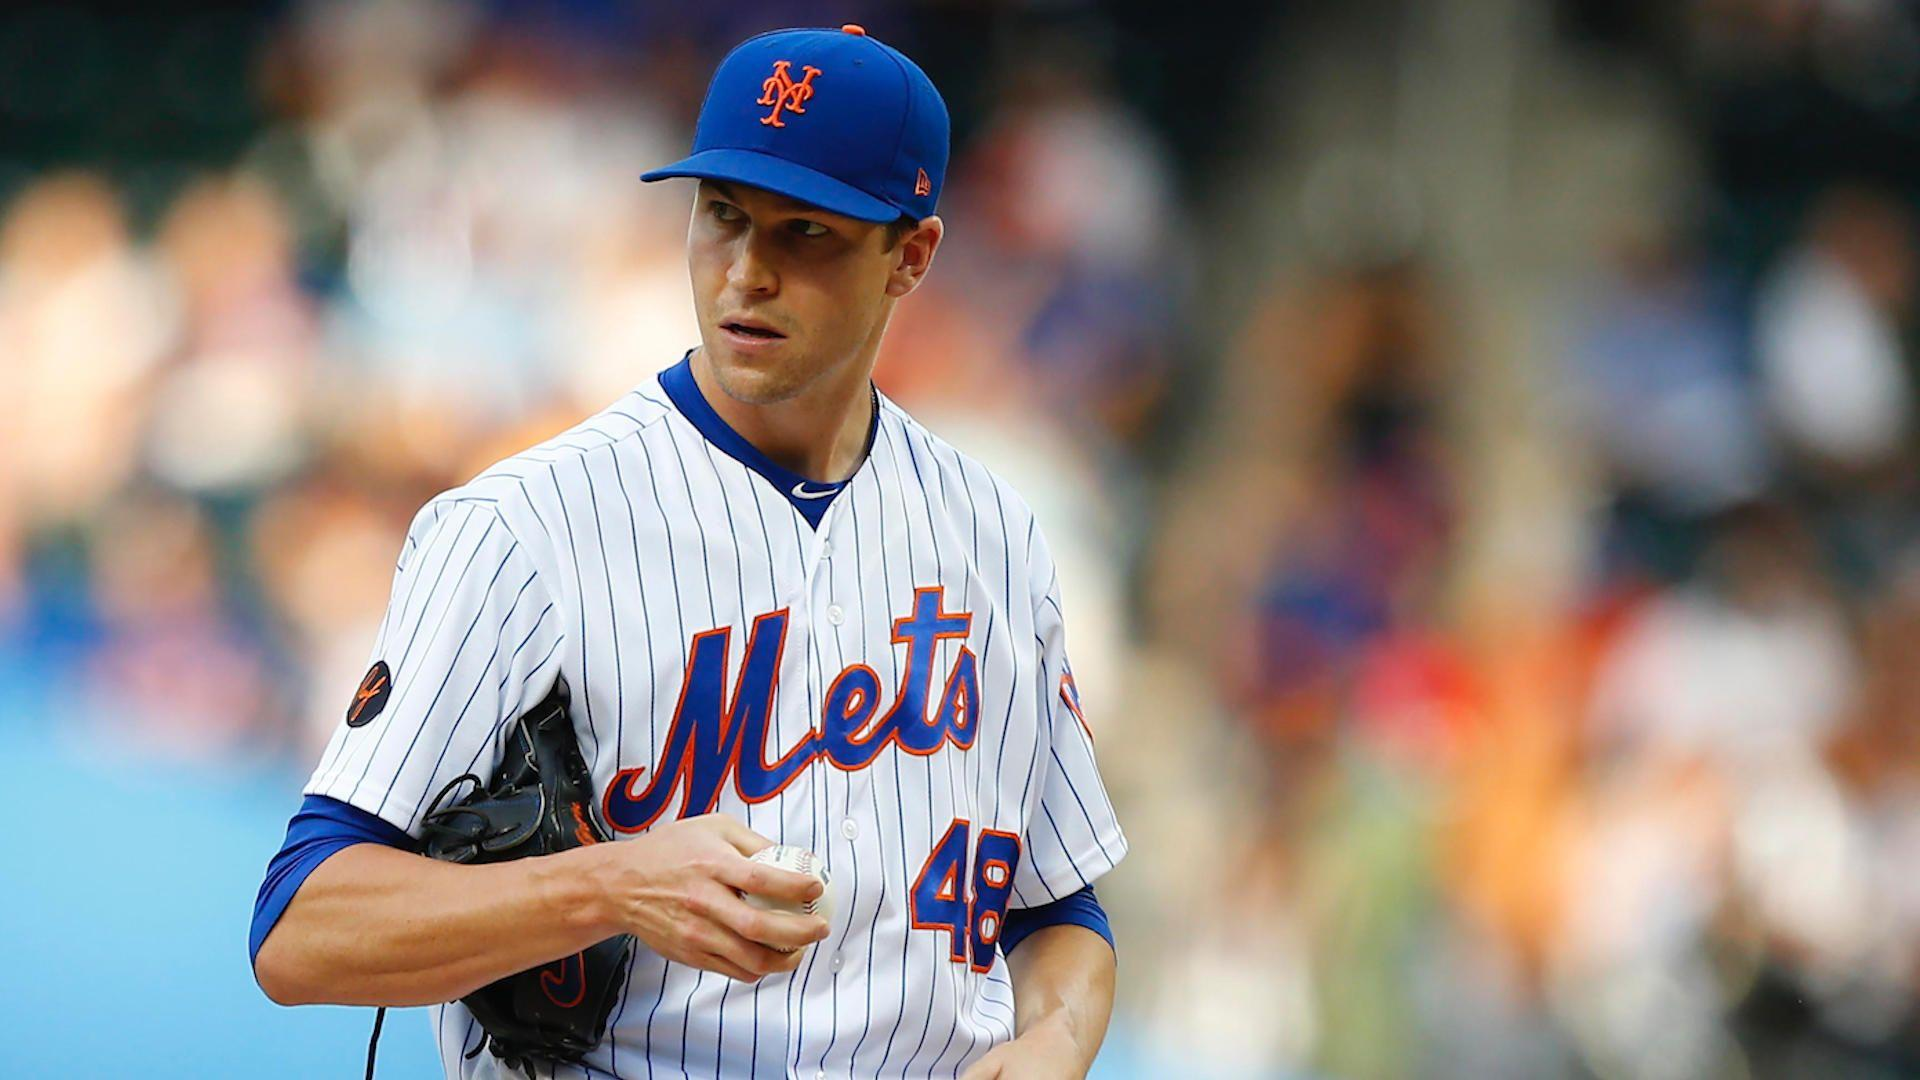 Future for Jacob deGrom